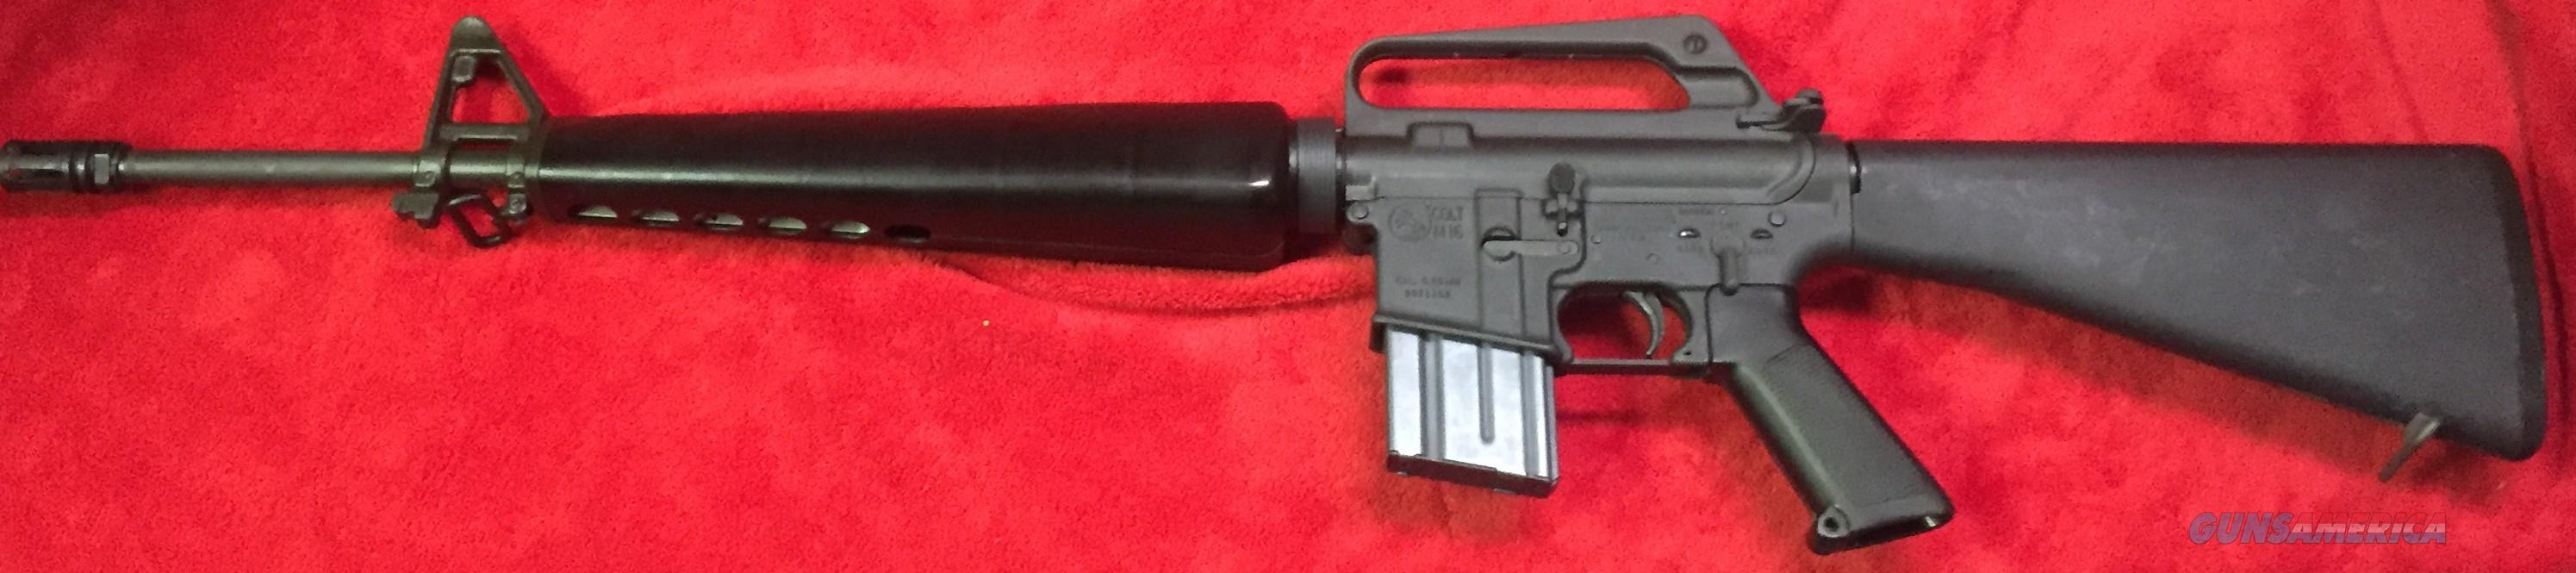 Colt M16, Fully Transferable